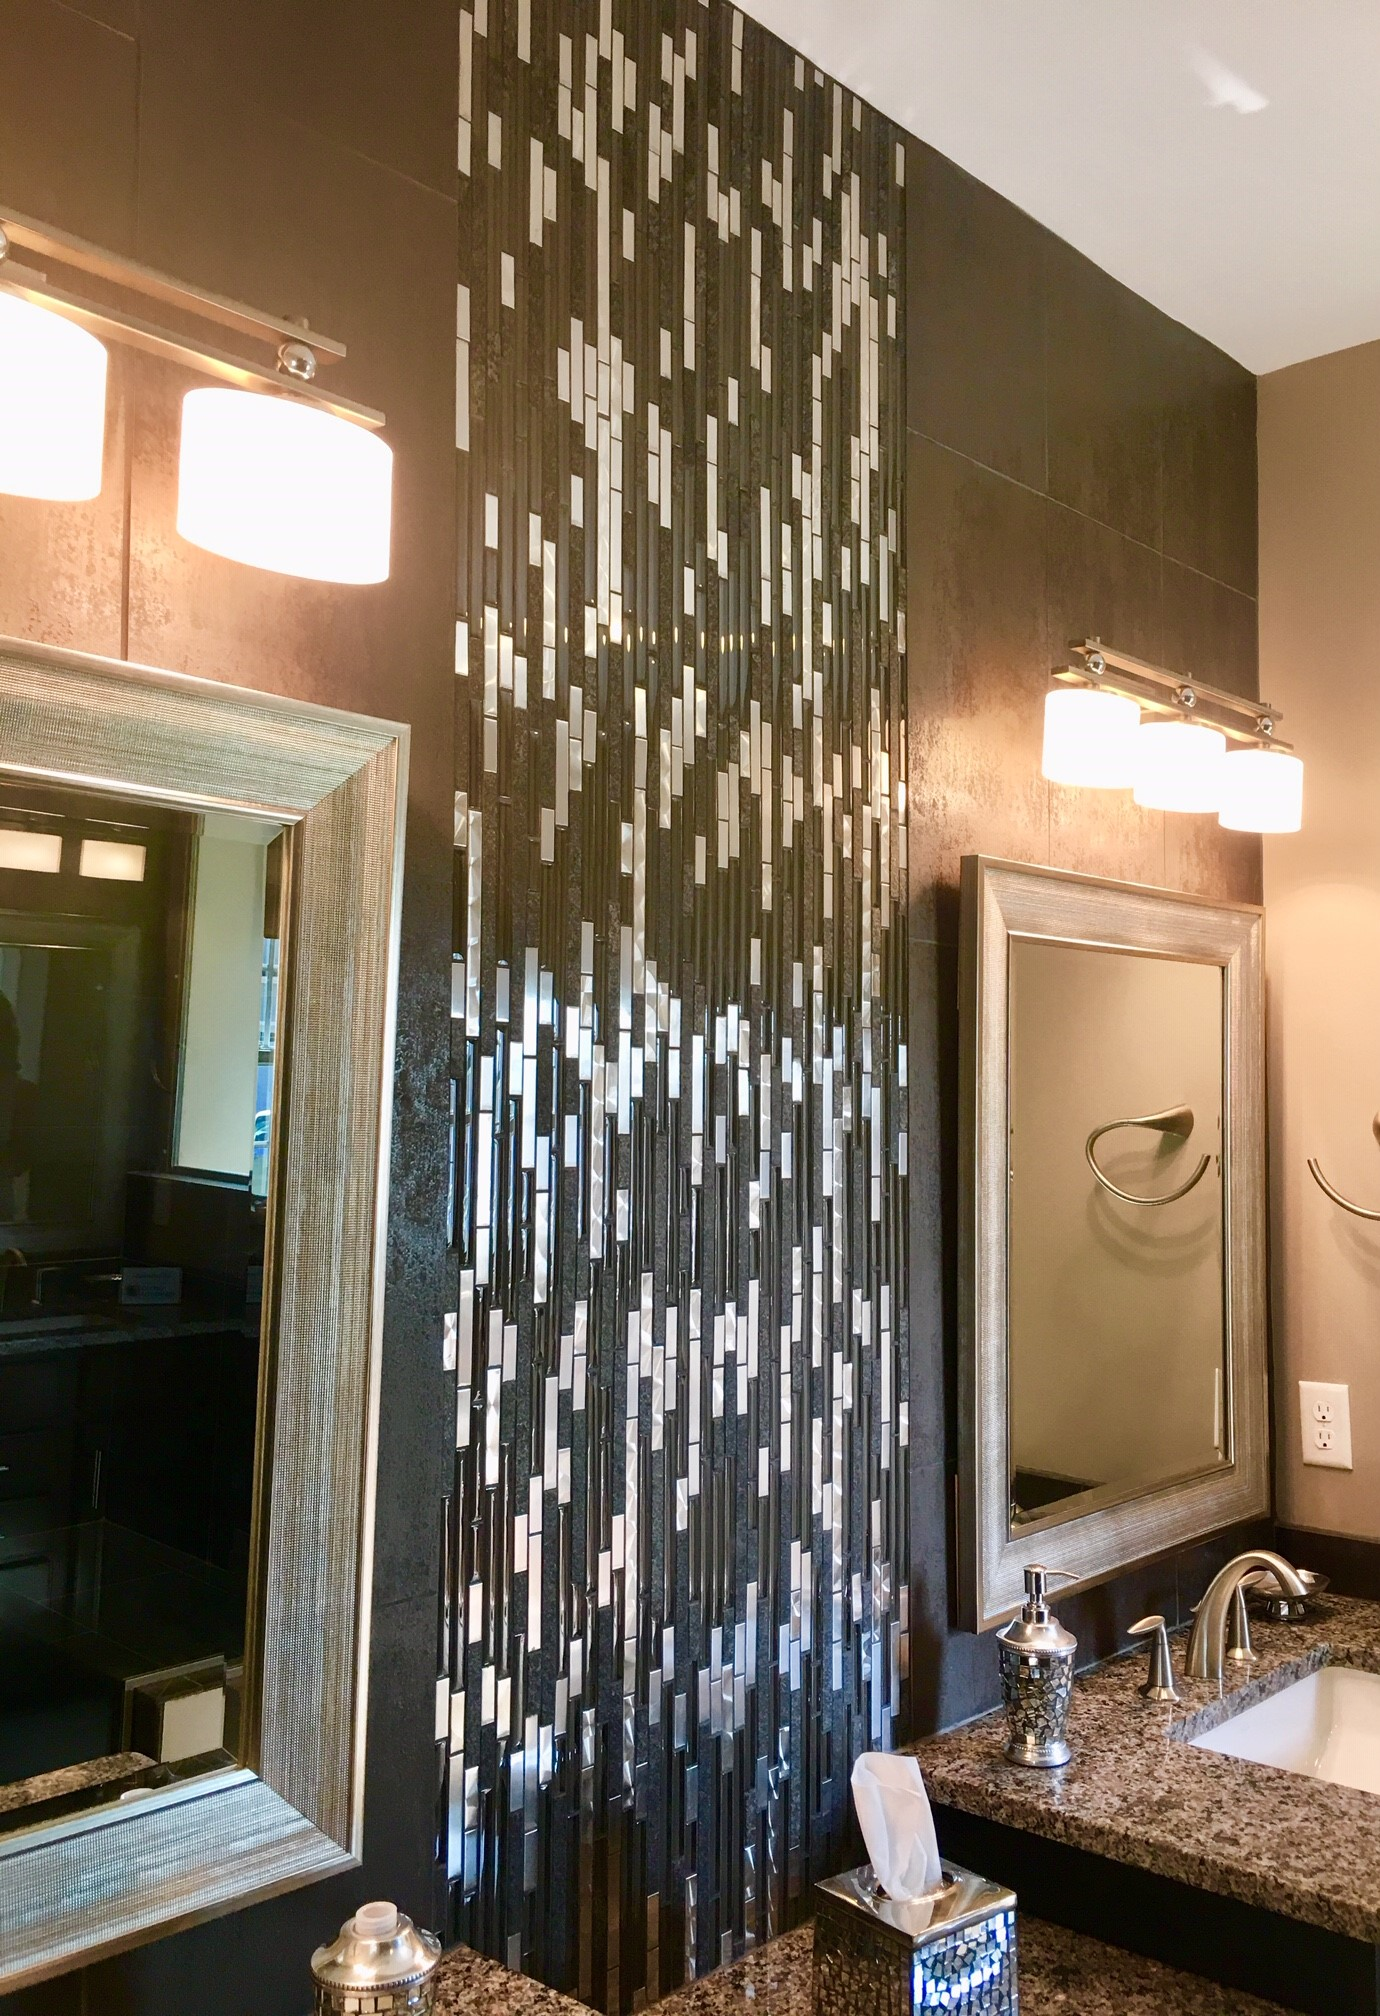 Bathroom Interior Design in Niagara, ON